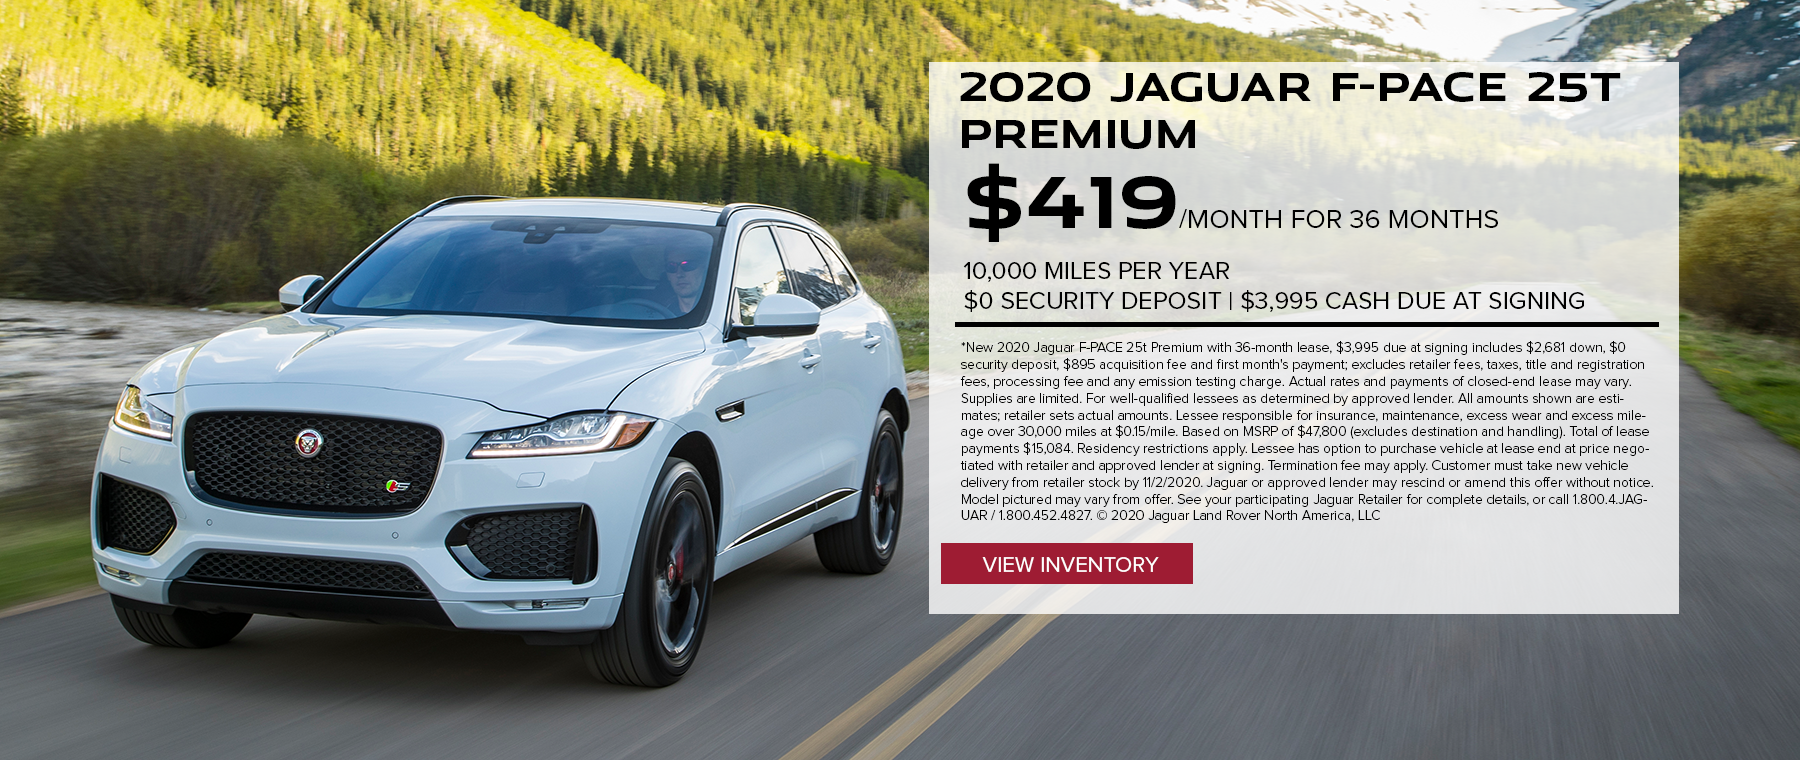 2020 JAGUAR F-PACE 25T PREMIUM. $419 PER MONTH. 36 MONTH LEASE TERM. $3,995 CASH DUE AT SIGNING. $0 SECURITY DEPOSIT. 10,000 MILES PER YEAR. EXCLUDES RETAILER FEES, TAXES, TITLE AND REGISTRATION FEES, PROCESSING FEE AND ANY EMISSION TESTING CHARGE. OFFER ENDS 11/2/2020.